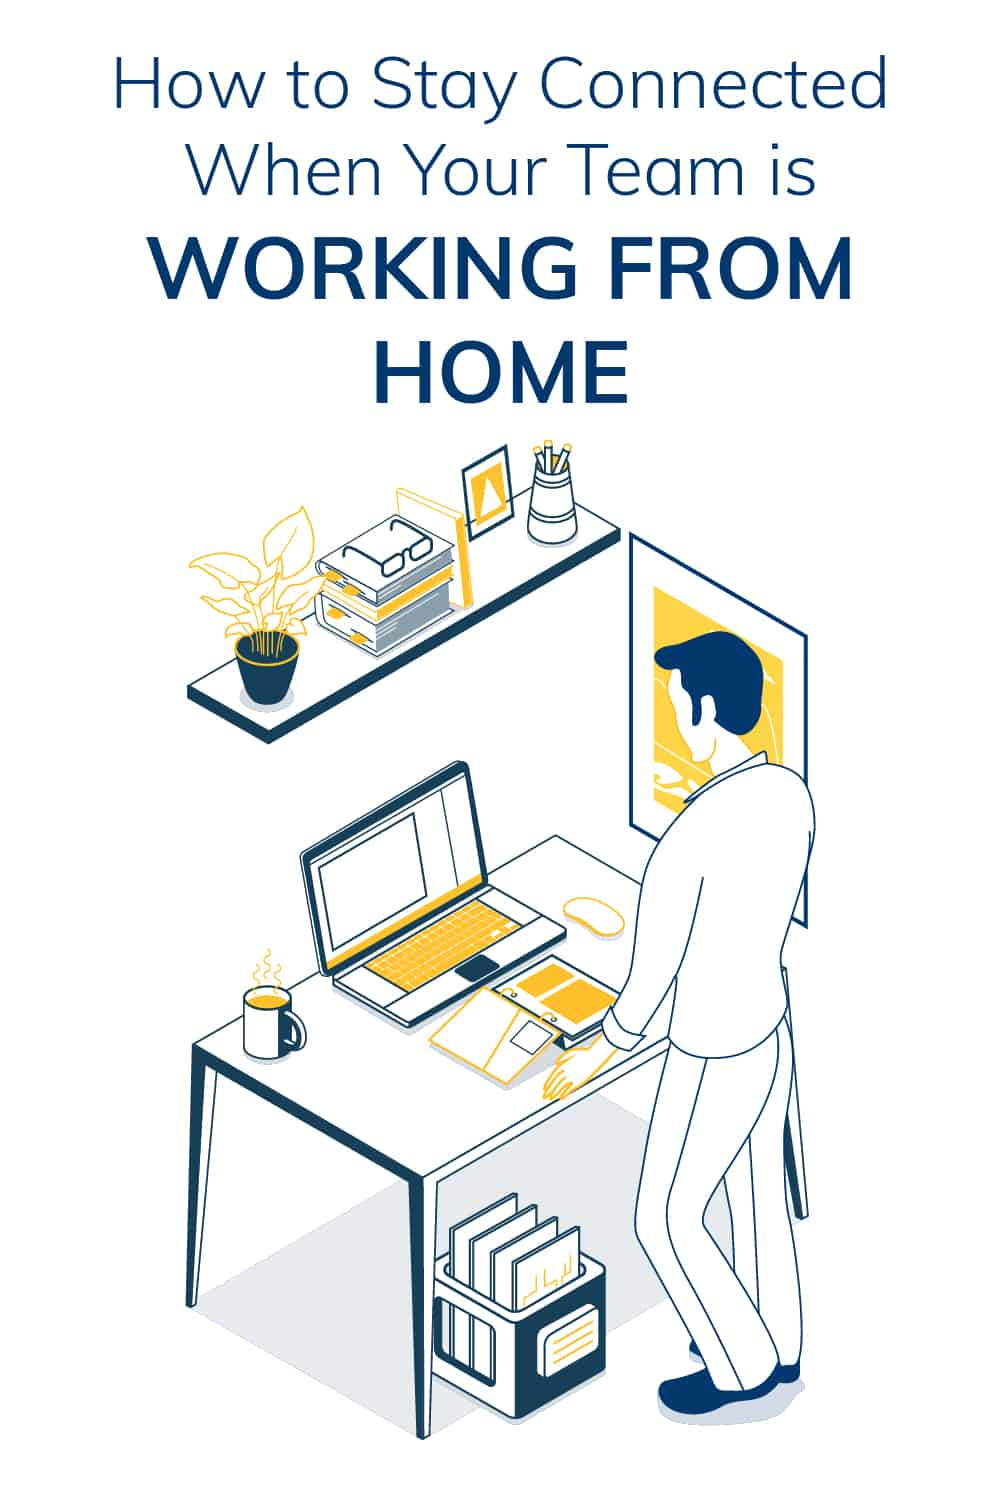 It's become necessary to set up the technology required to allow employees to work from home. Here are some tips to stay connected with your team. via @scopedesign